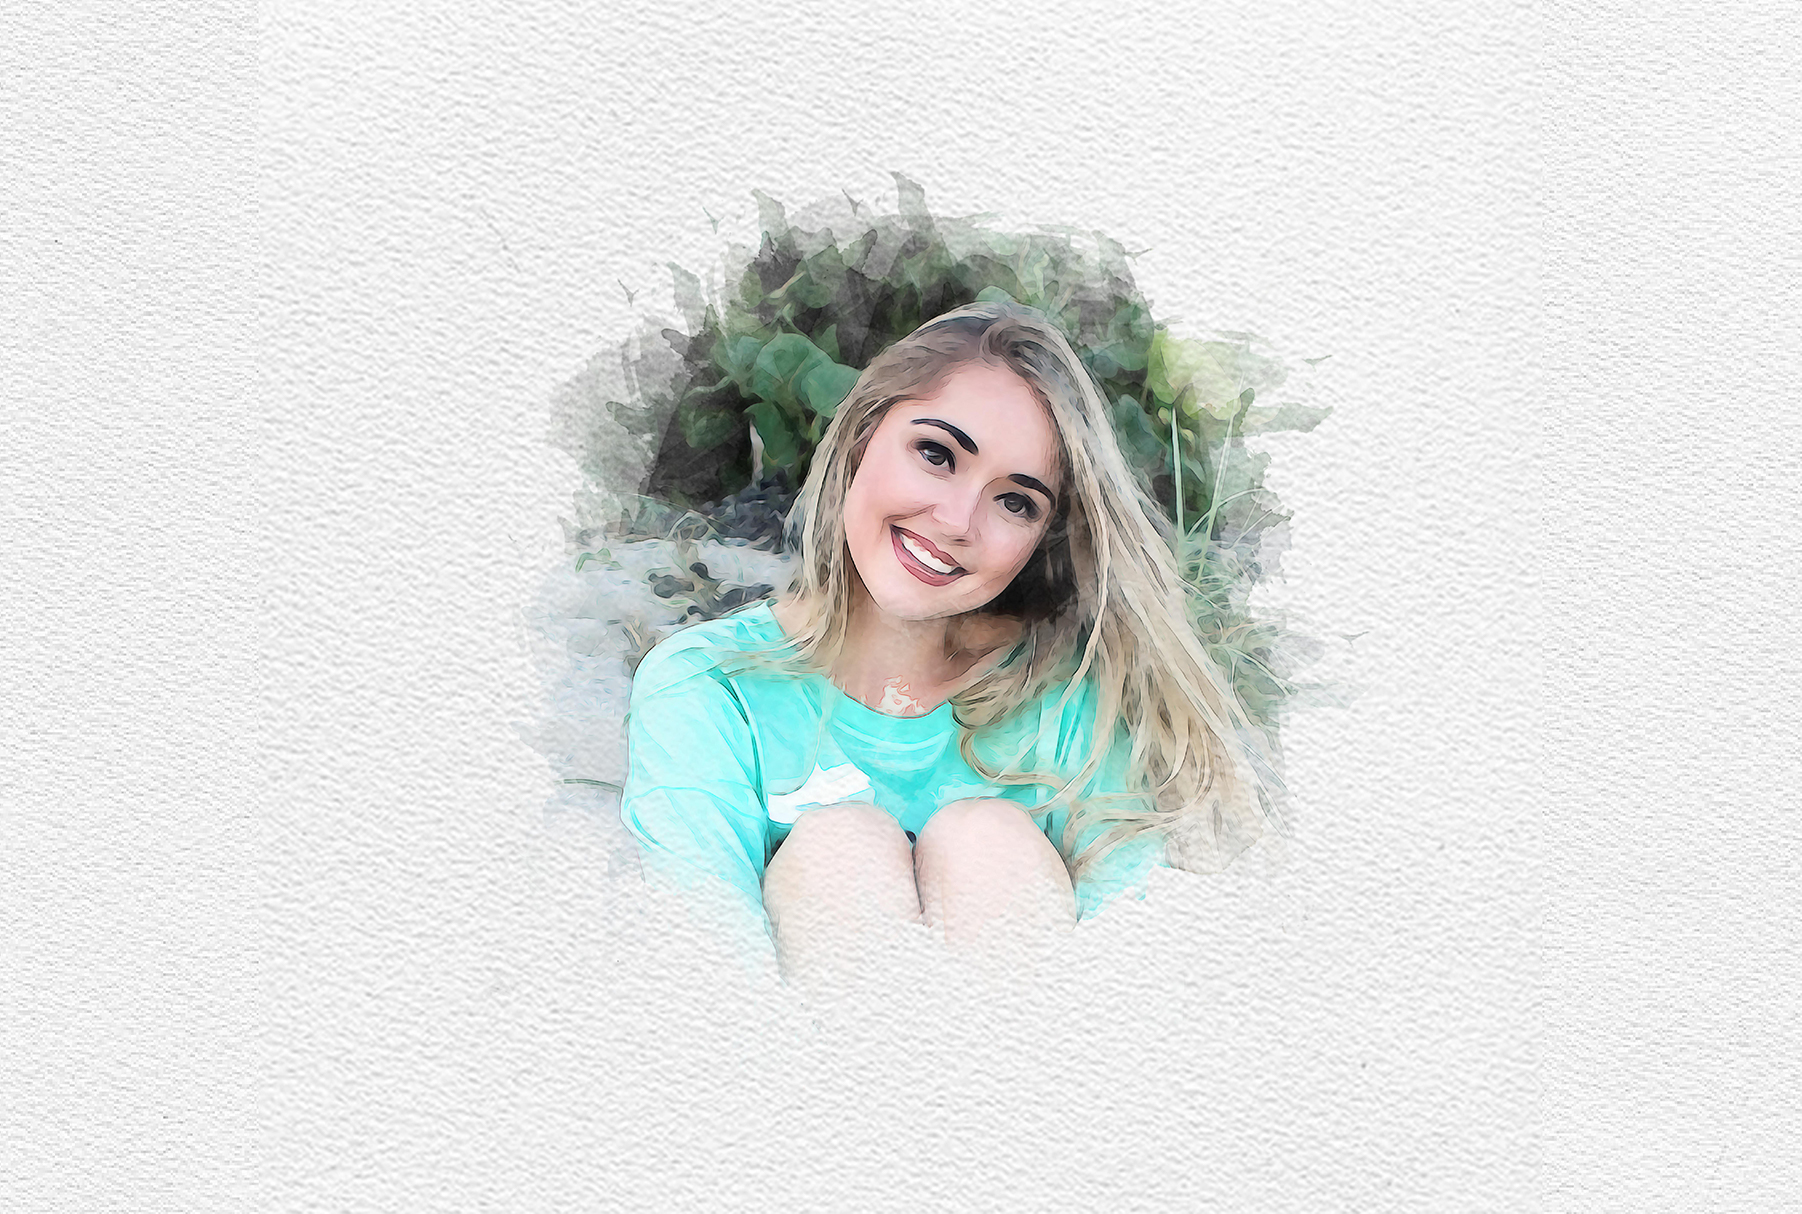 Draw a watercolor portrait from the photo